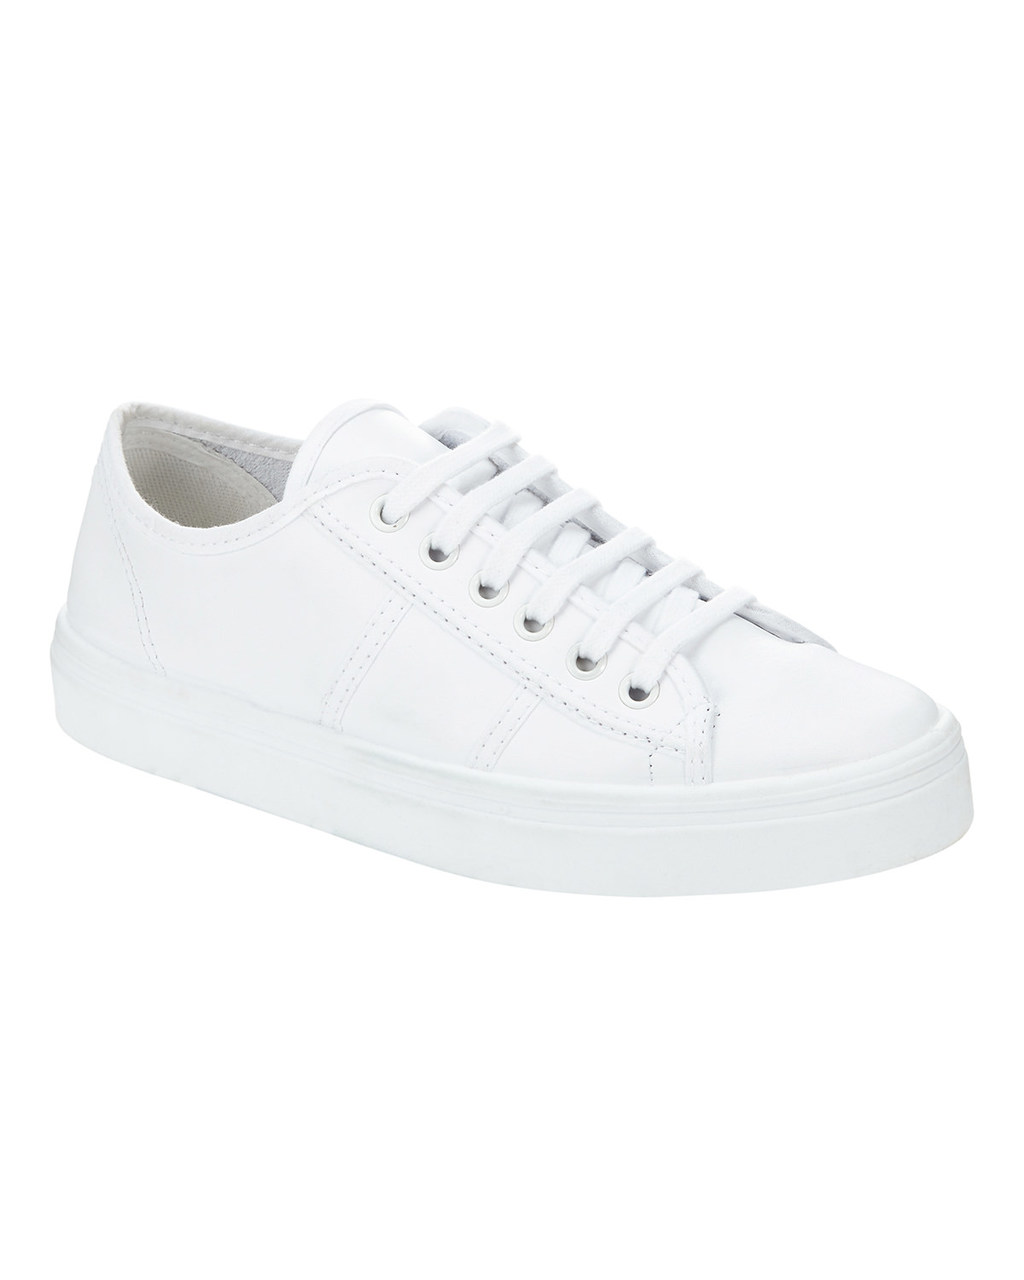 Carmen Leather Trainer - predominant colour: white; occasions: casual; material: leather; heel height: flat; toe: round toe; style: trainers; finish: plain; pattern: plain; season: s/s 2016; wardrobe: basic